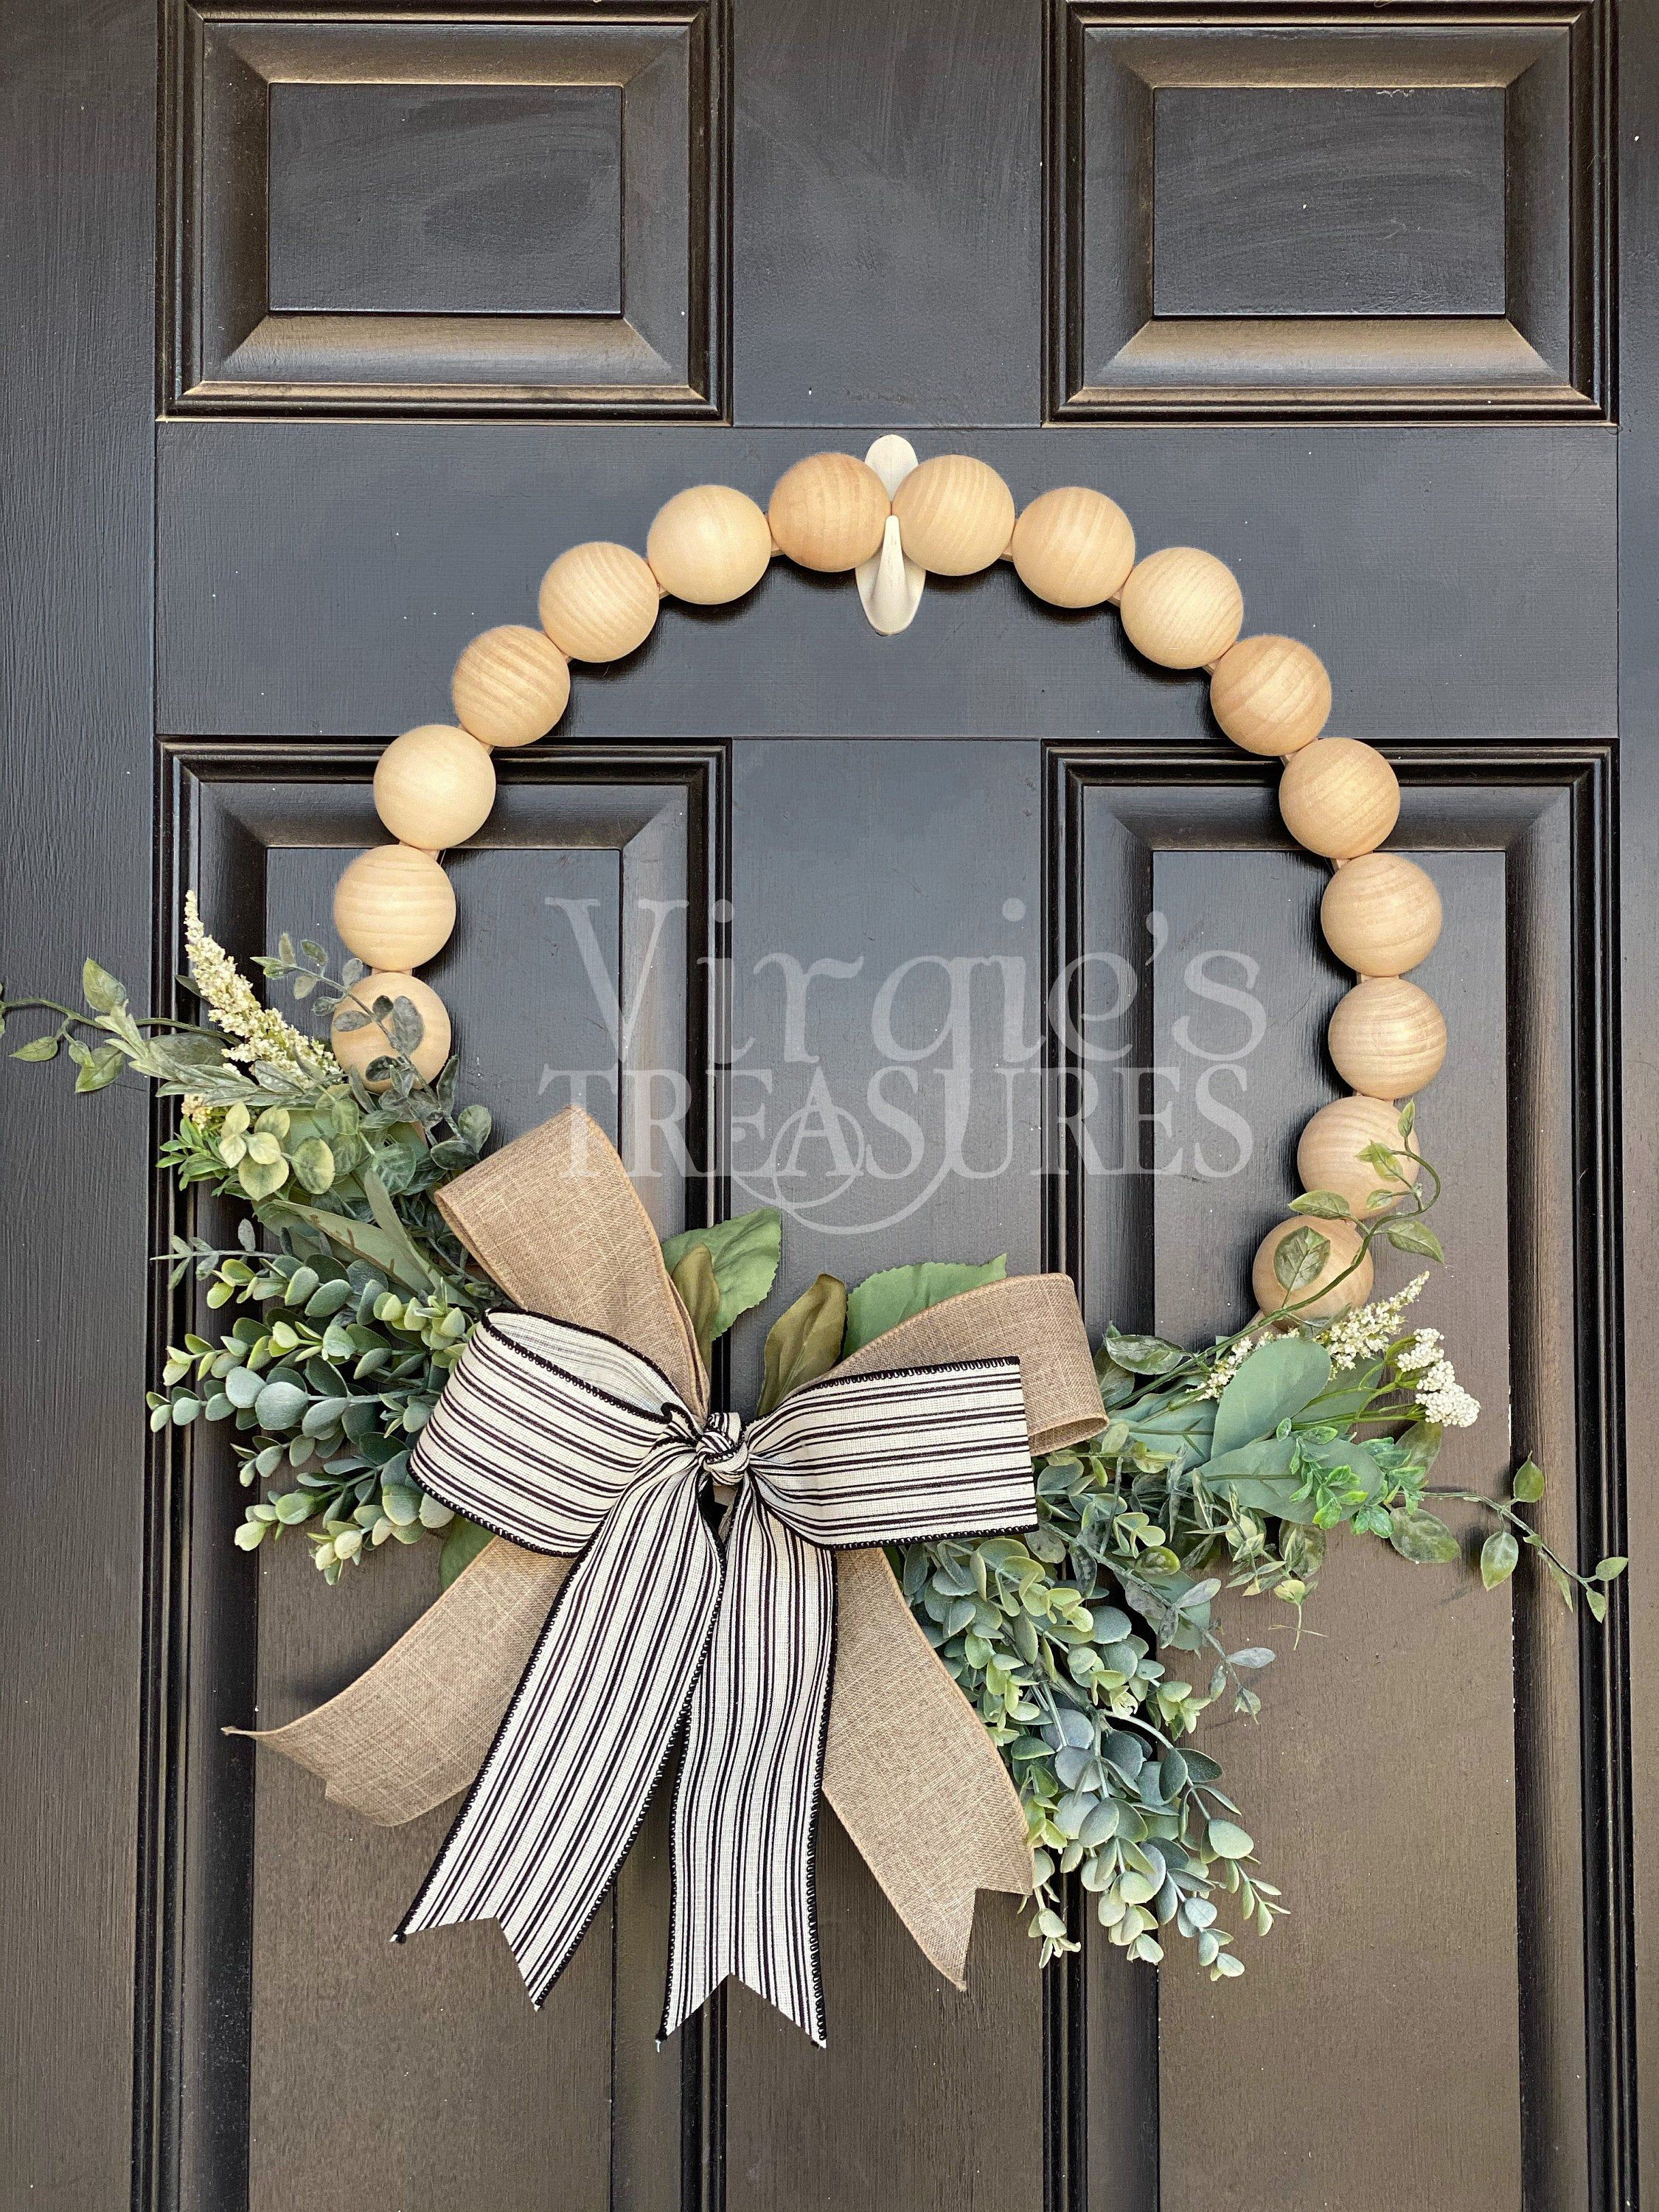 Excited To Share This Item From My Etsy Shop Wood Bead Wreath Farmhouse Wreath Eucalyptus Hoop Wreath Wall Gal In 2020 Kitchen Wreath Wood Beads Diy Spring Crafts